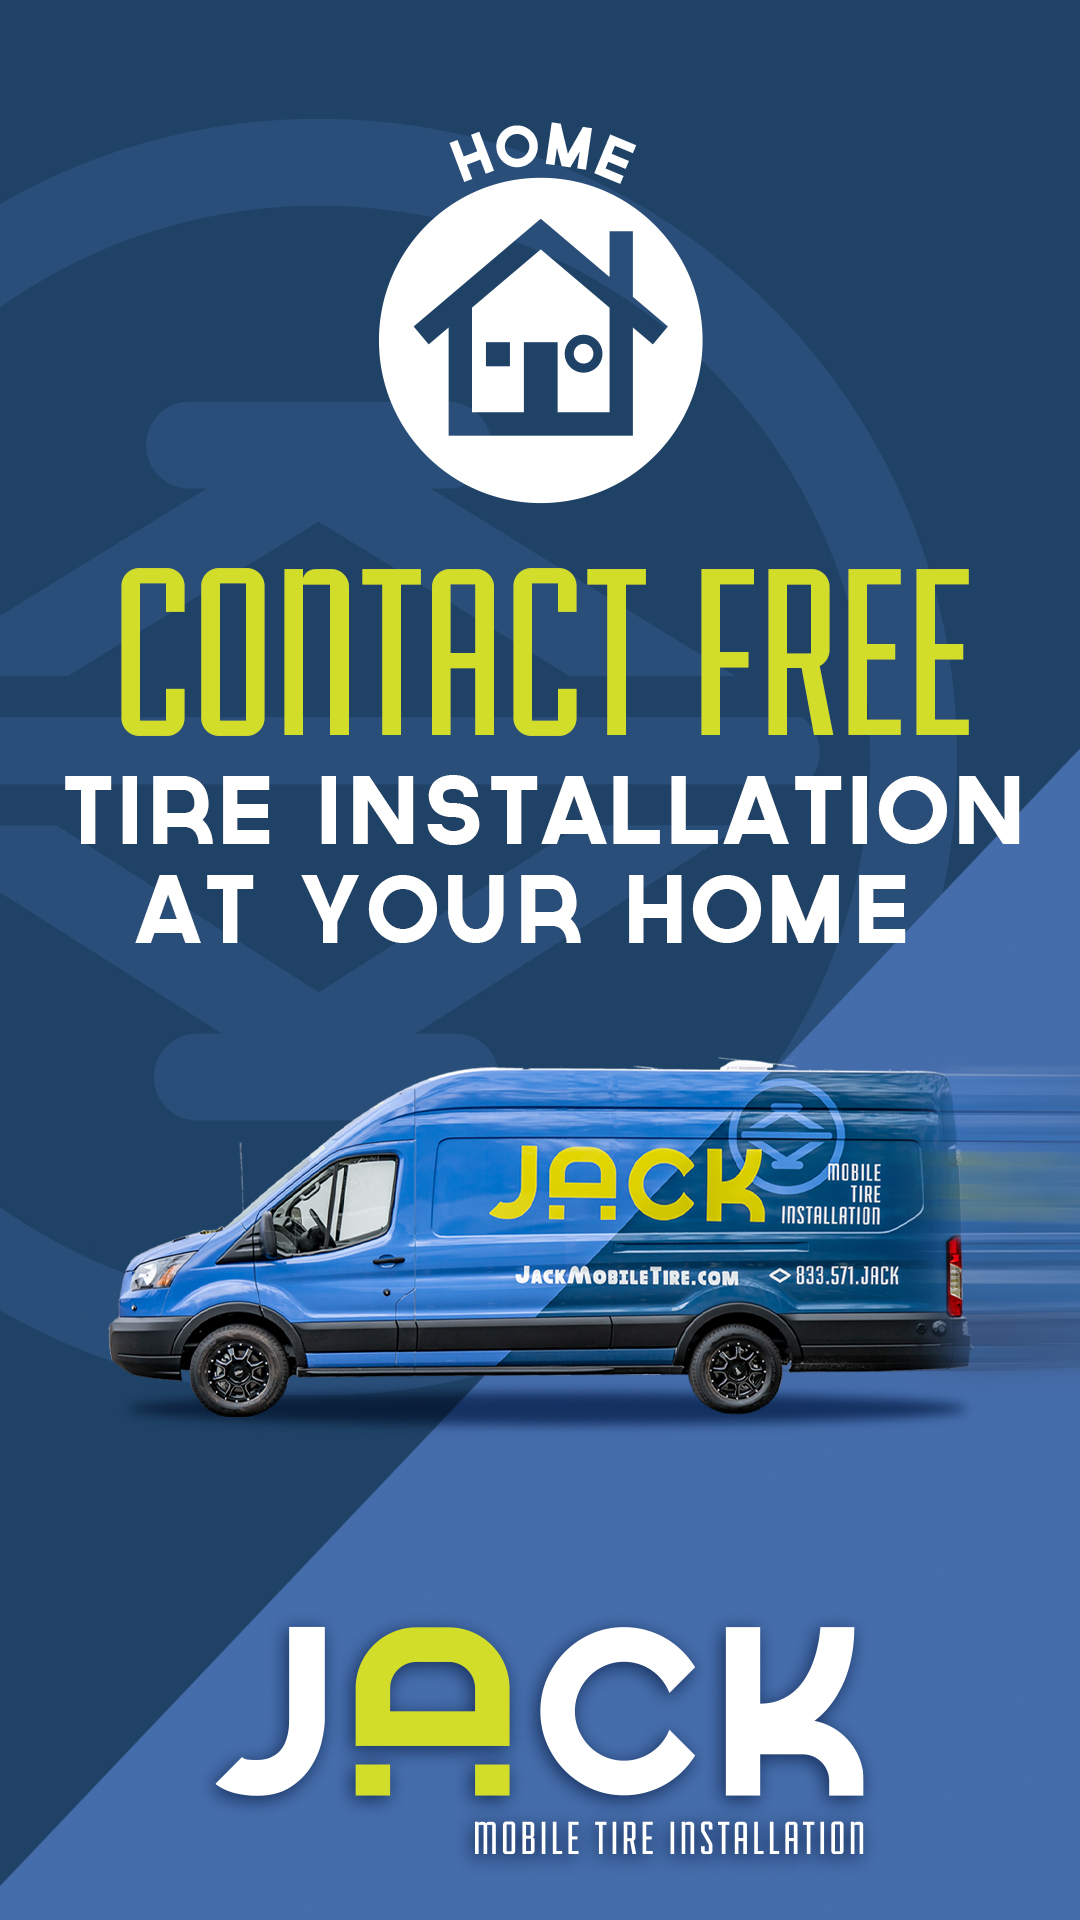 Jack Mobile Tire Installation Instagram Story